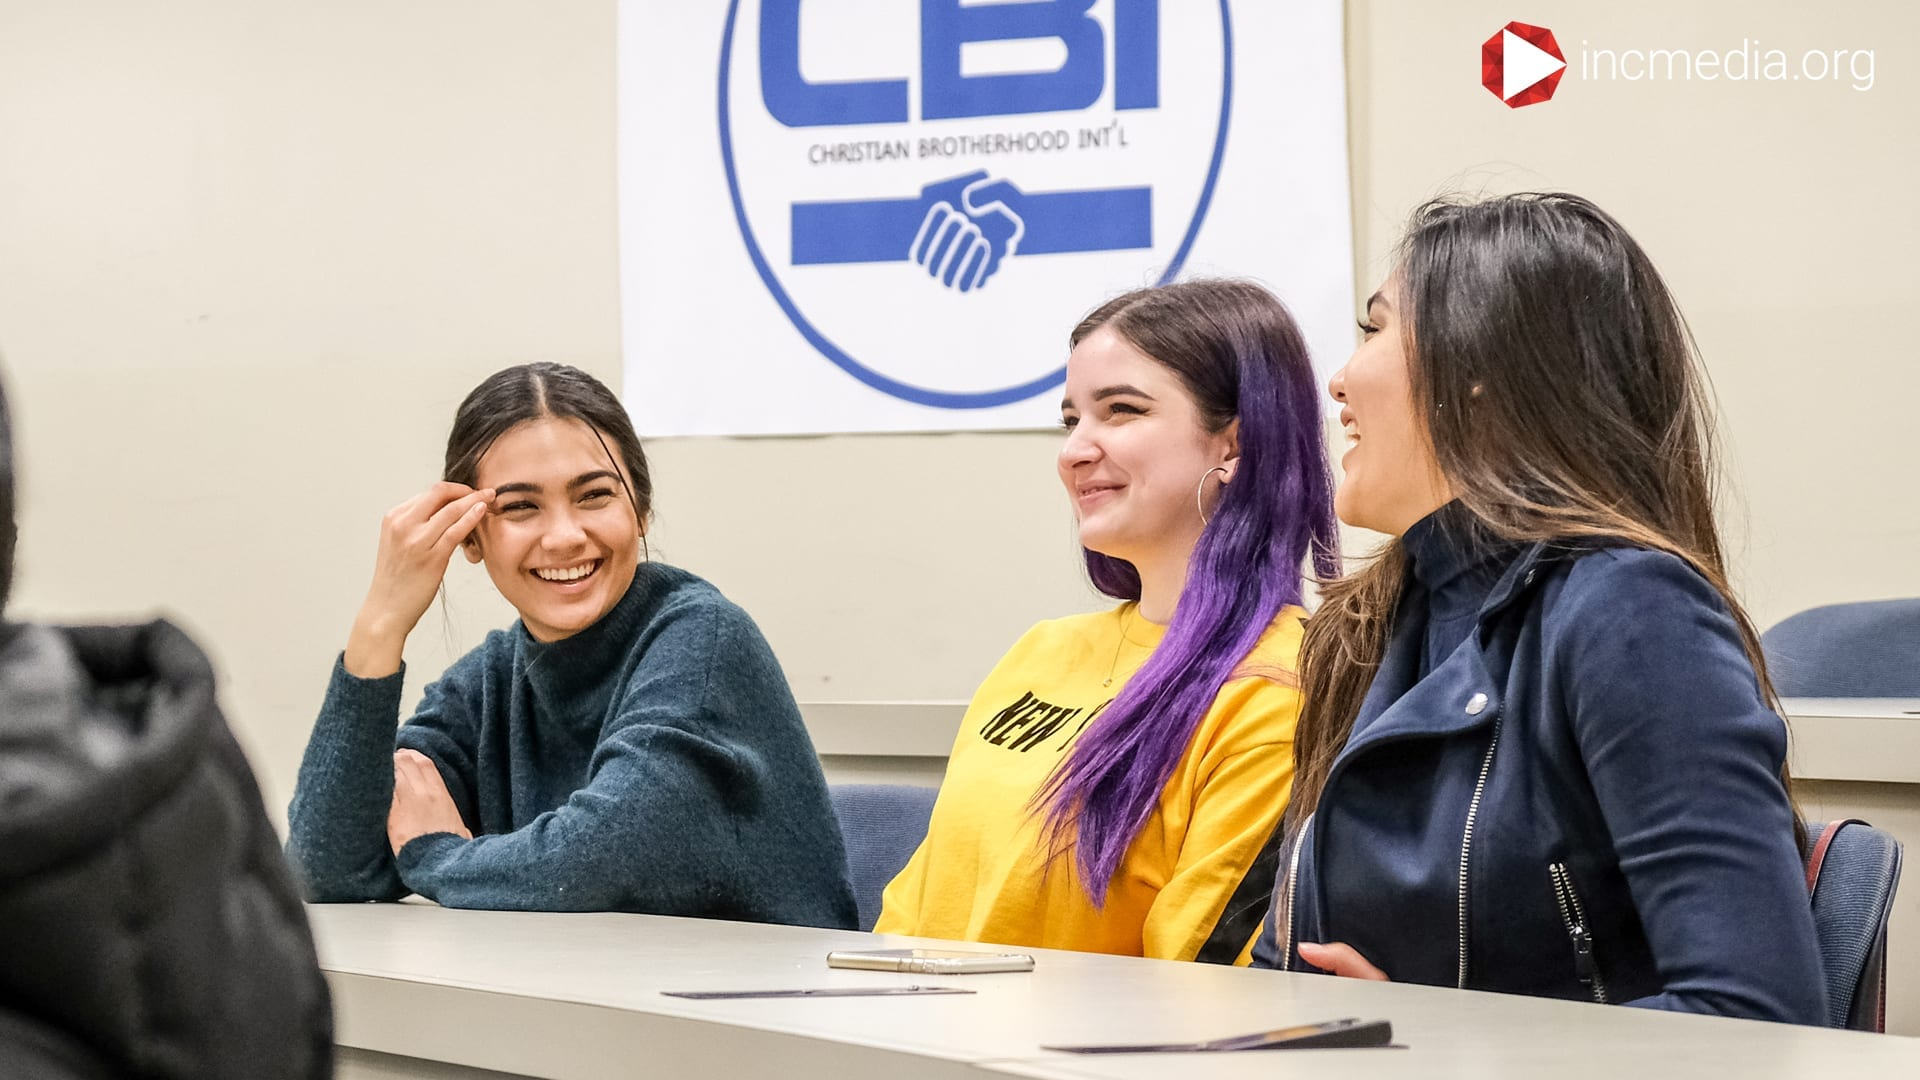 Three college girls smiling and laughing together